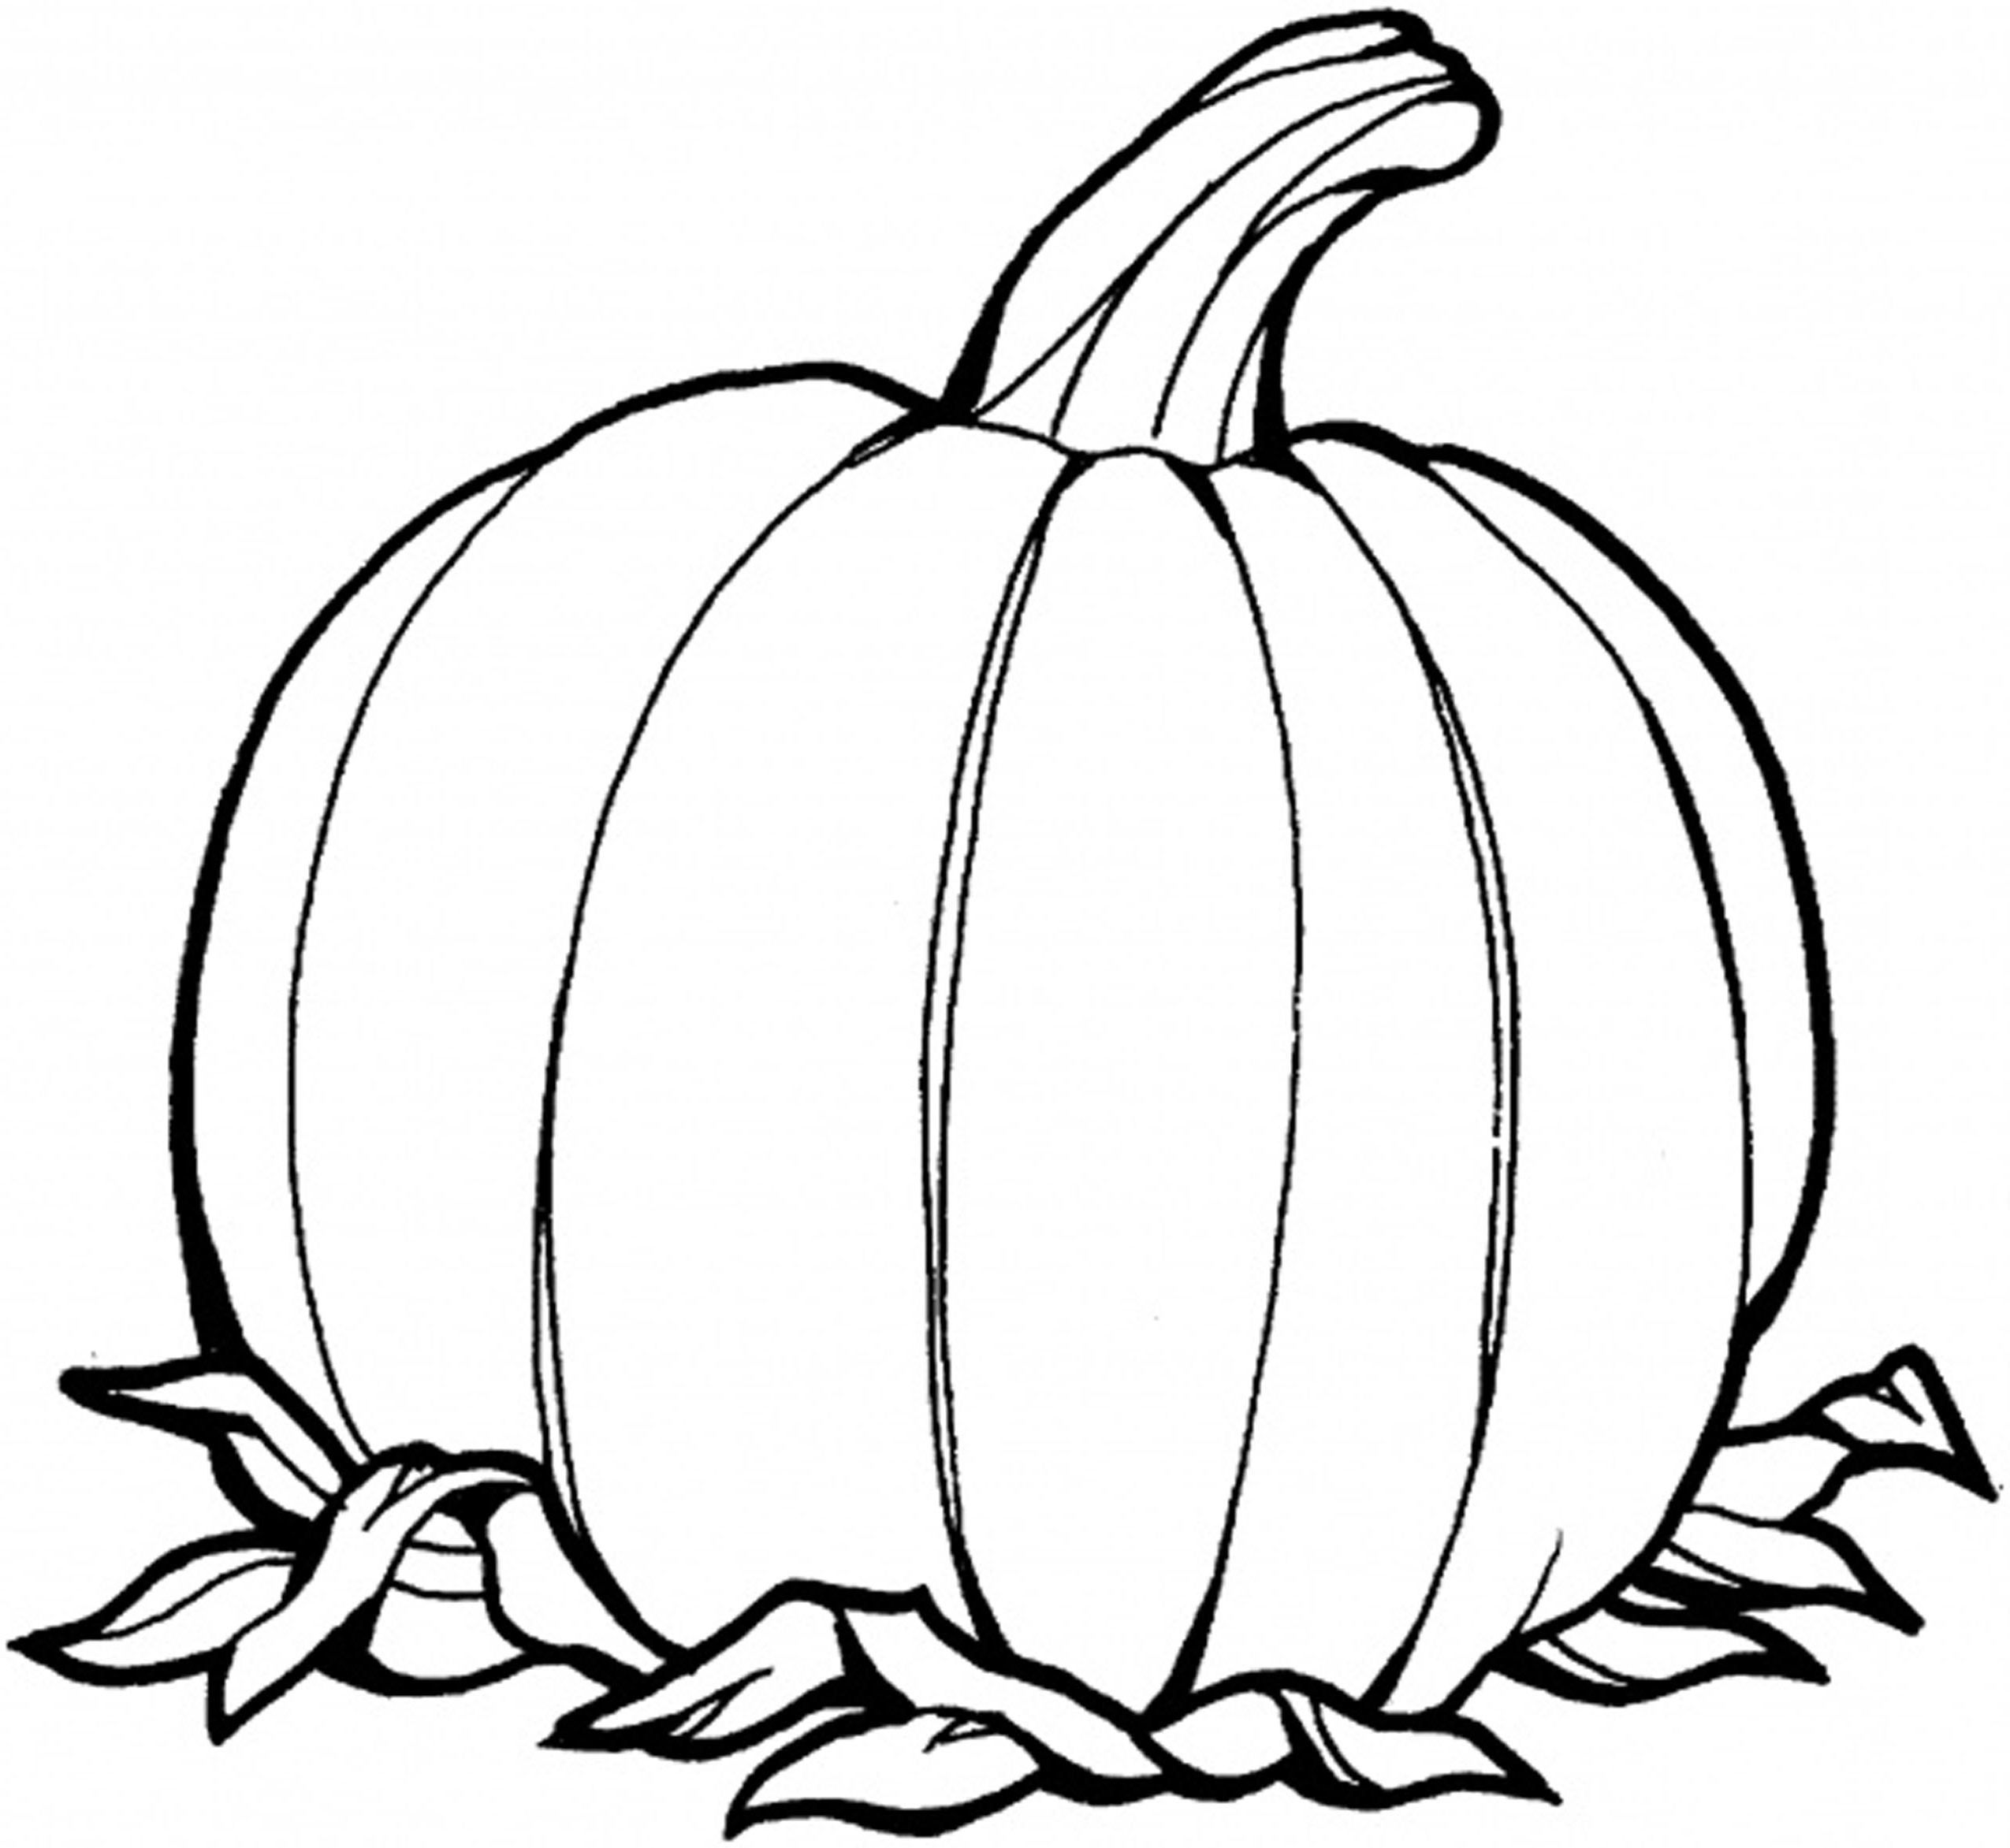 Halloween Pumpkin Coloring Pages Christian Pumpkin Coloring Pages Printable  Paper Crafts